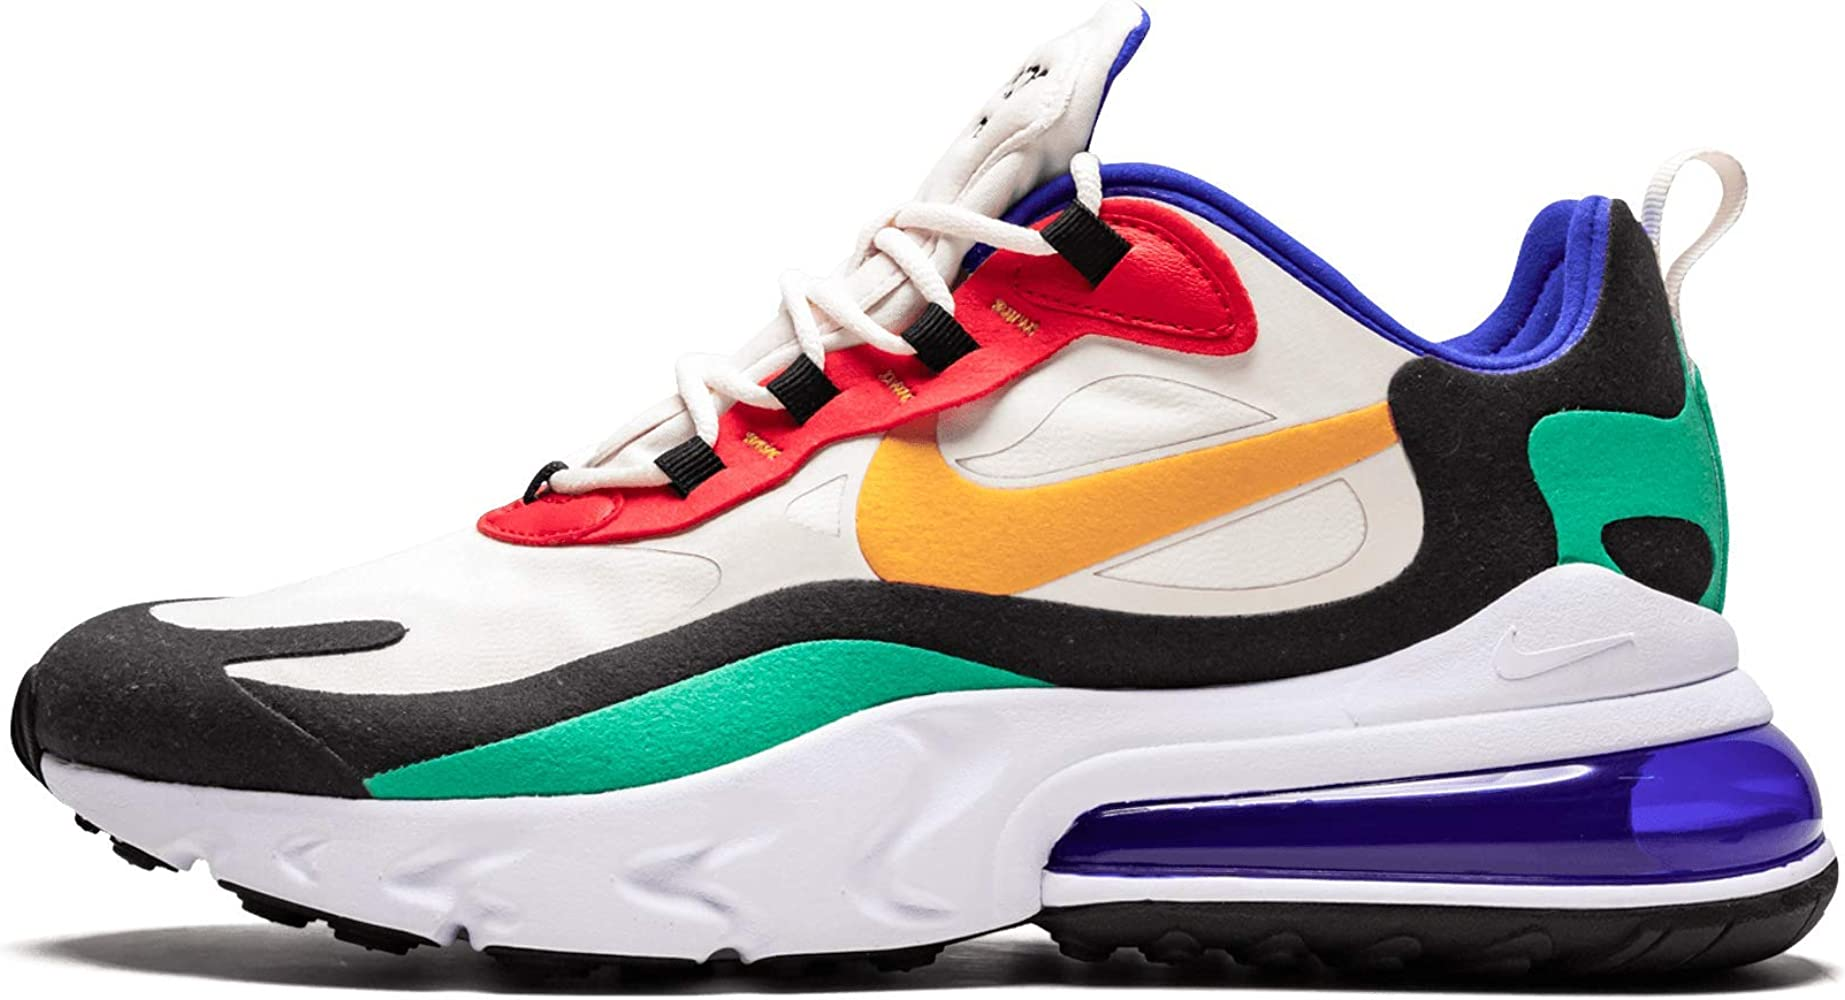 nike air max 270 react men's sneakers bauhaus